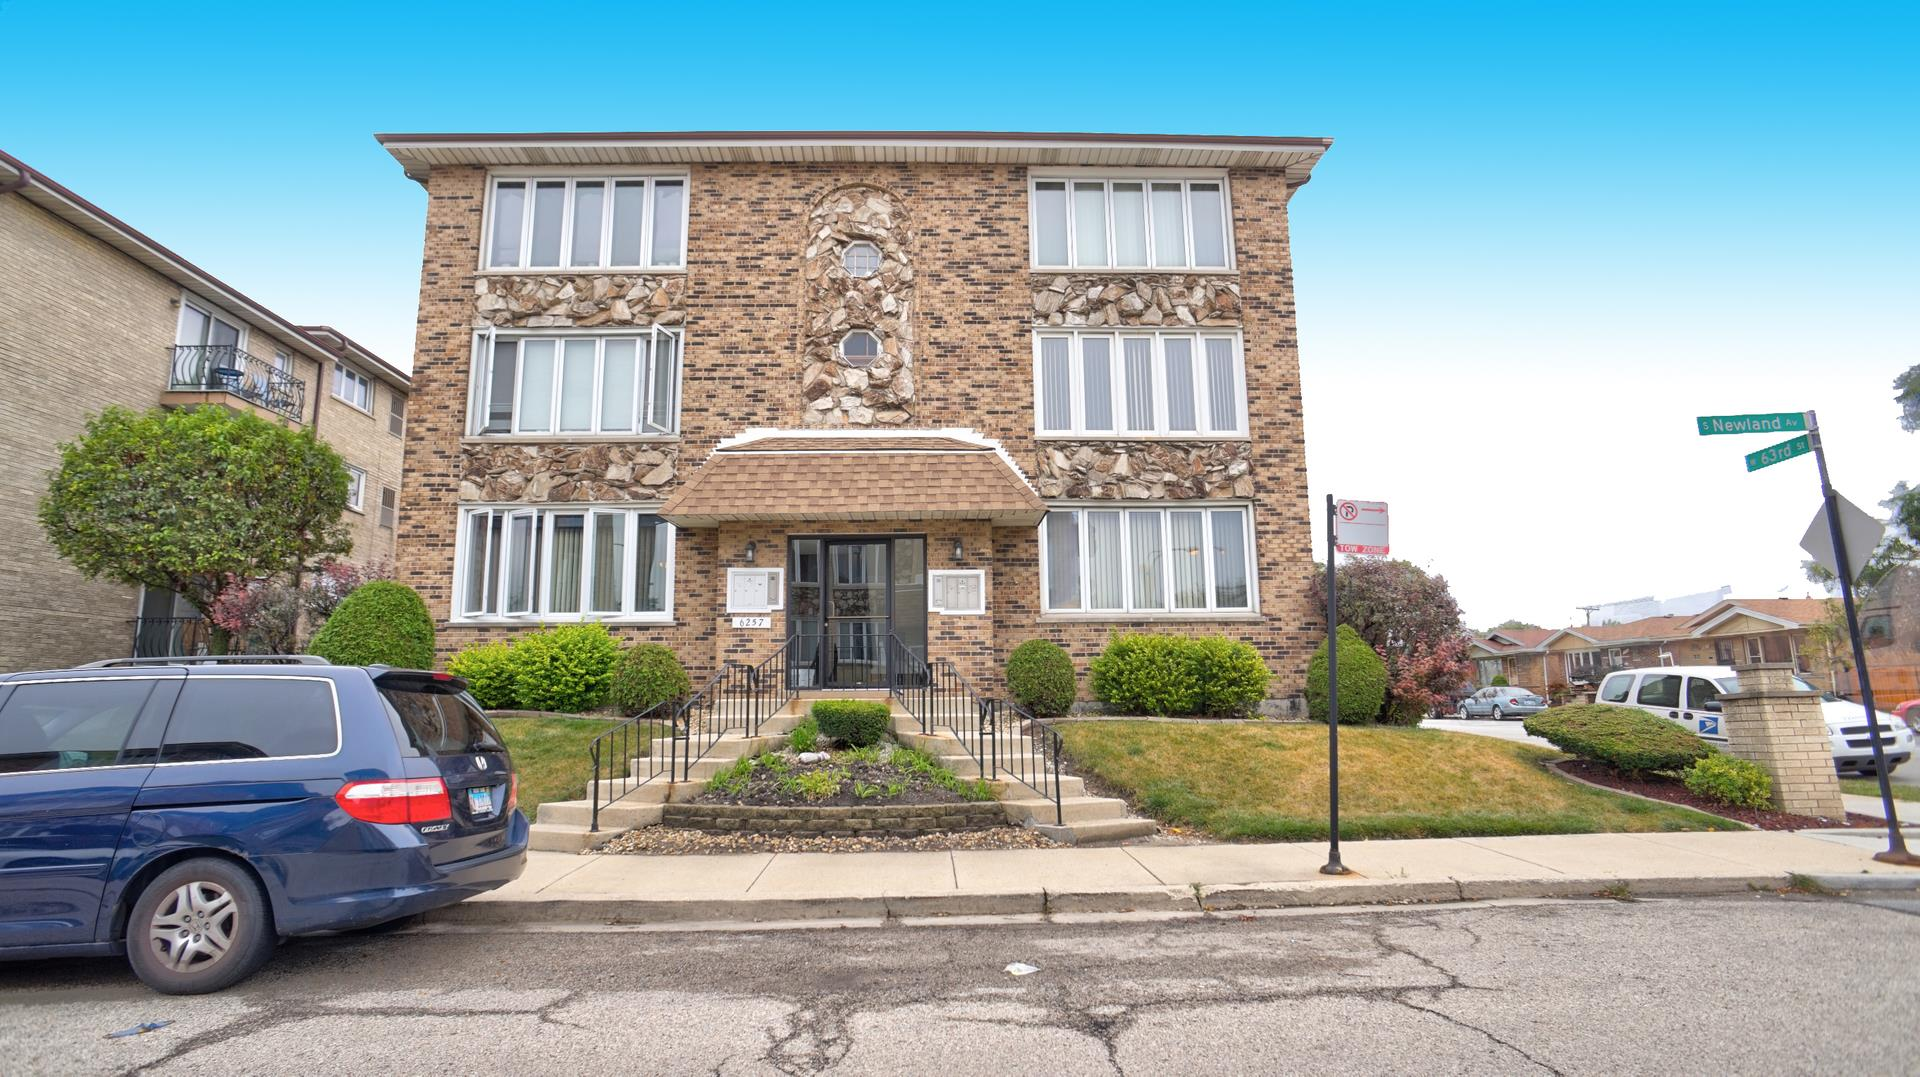 6257 S Newland Avenue #1N, Chicago, IL 60638 - #: 10855328